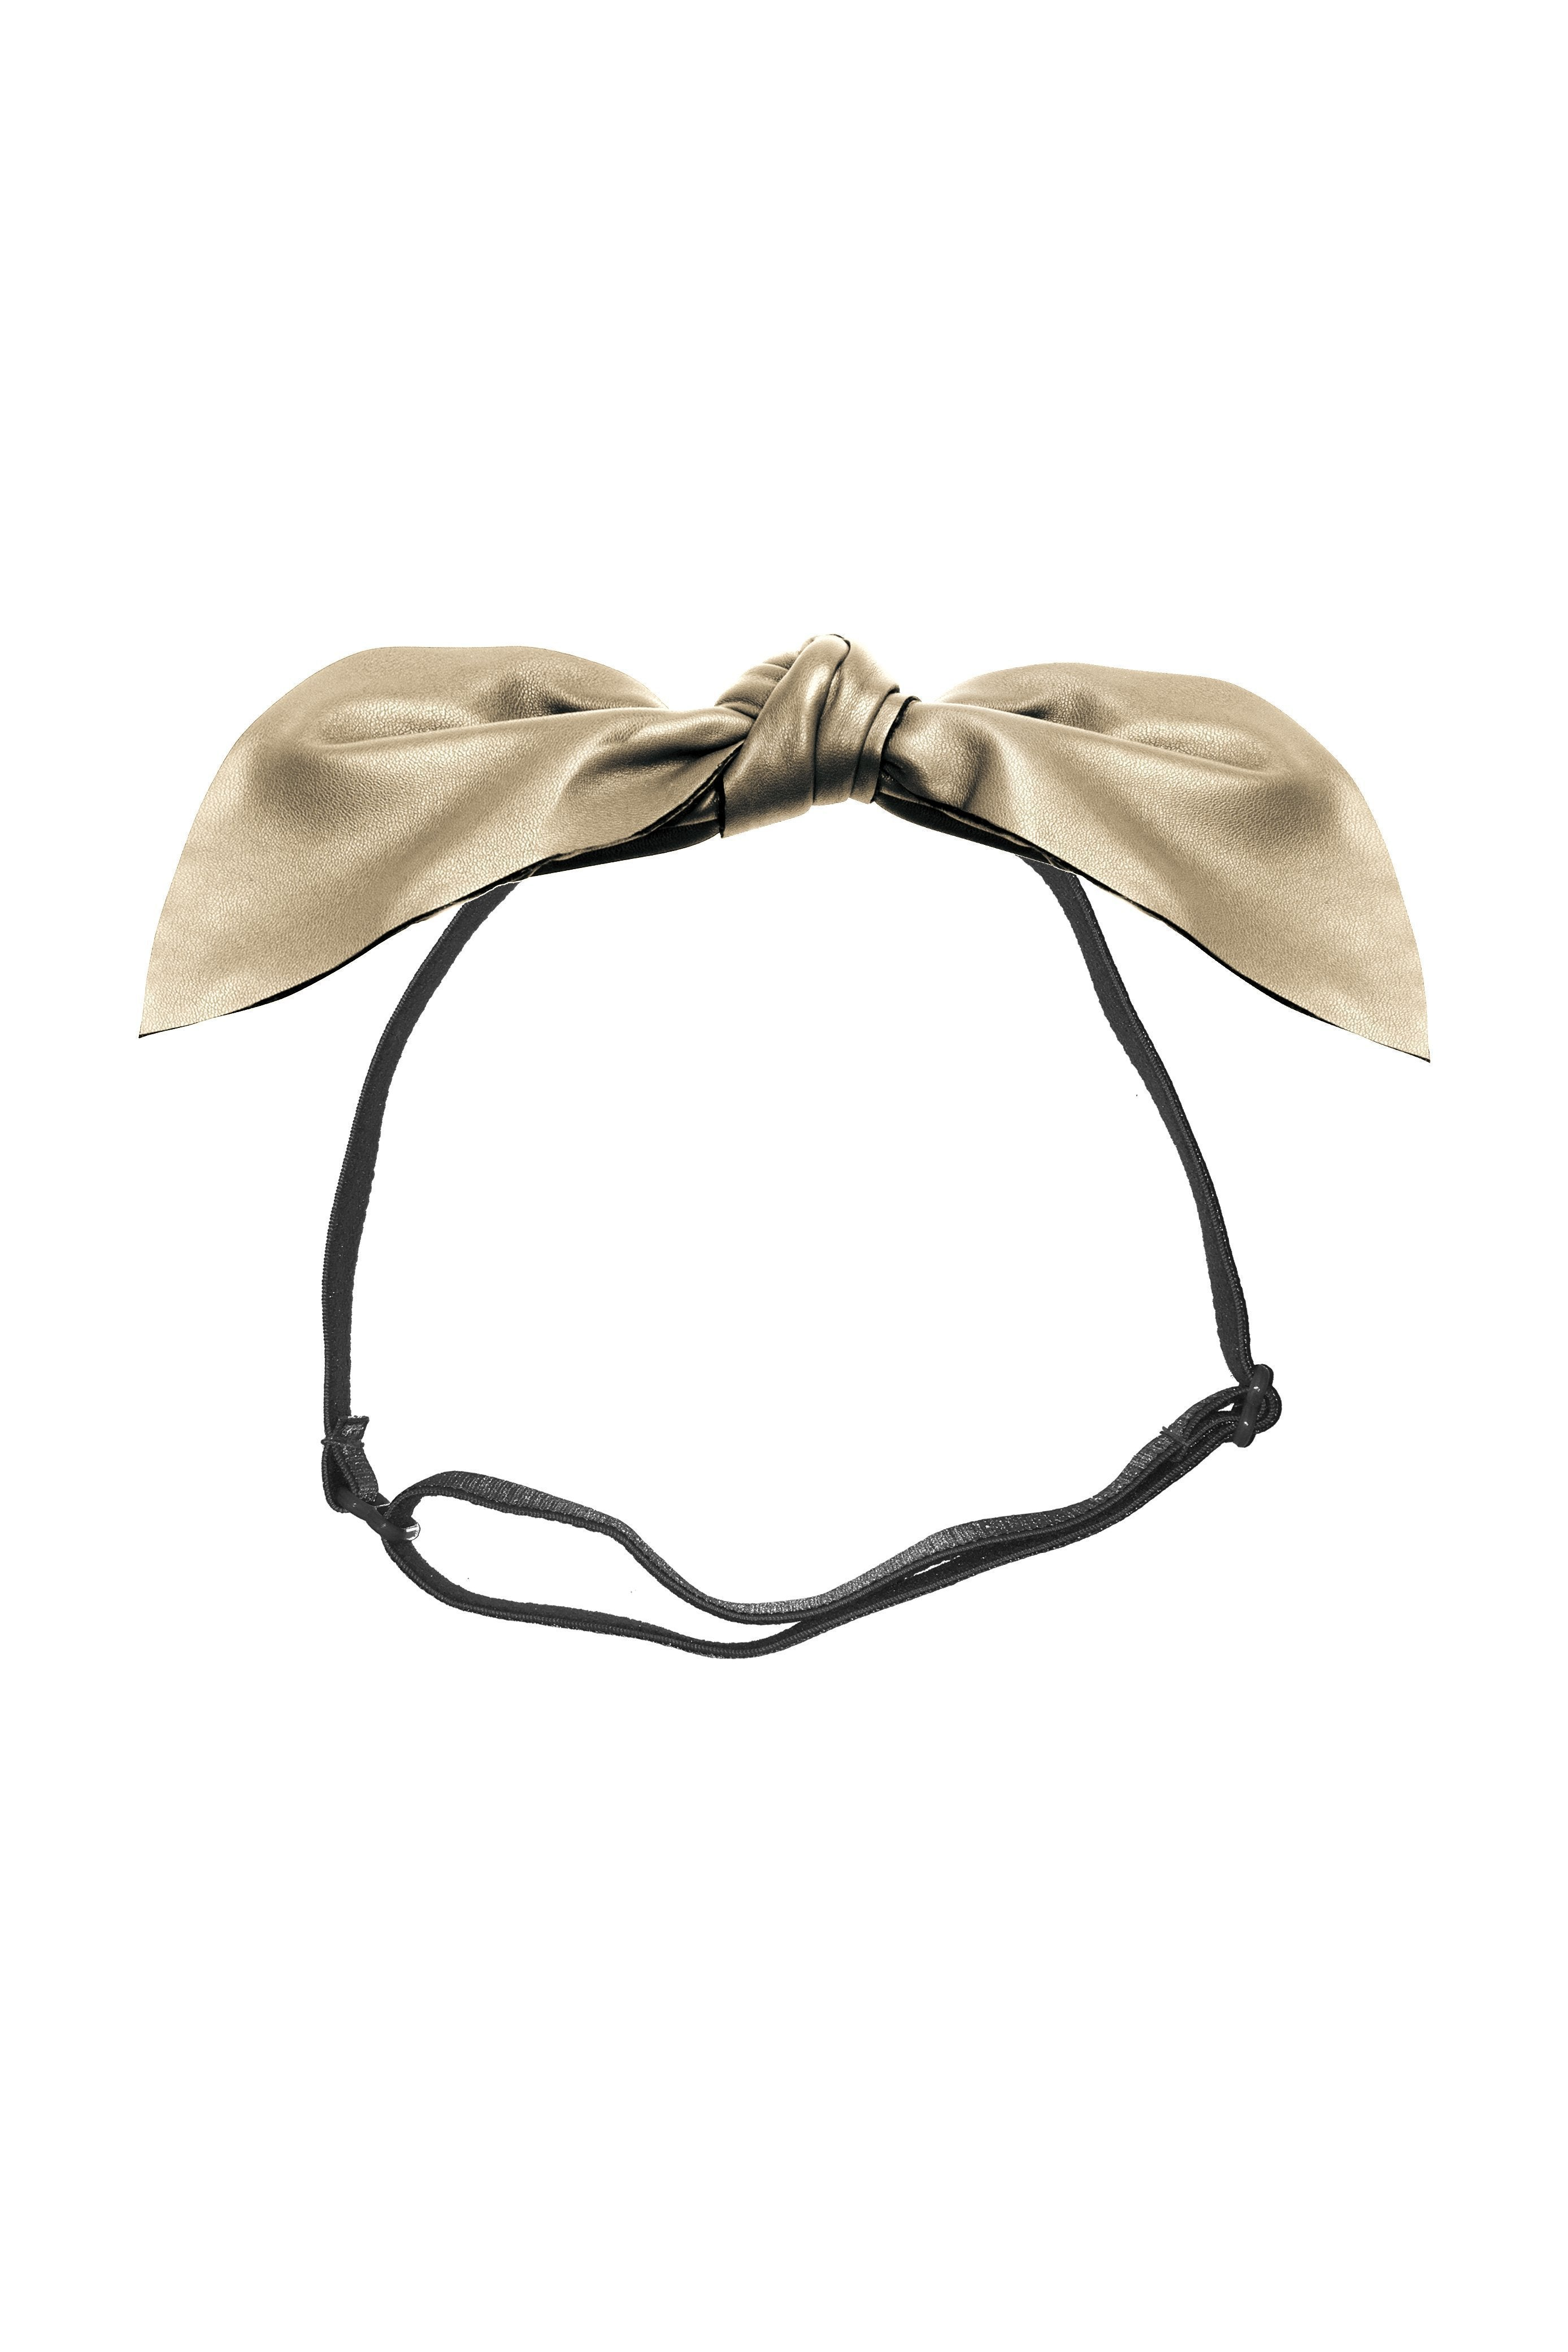 Perfect Leather Pointy Bow Wrap - Gold - PROJECT 6, modest fashion